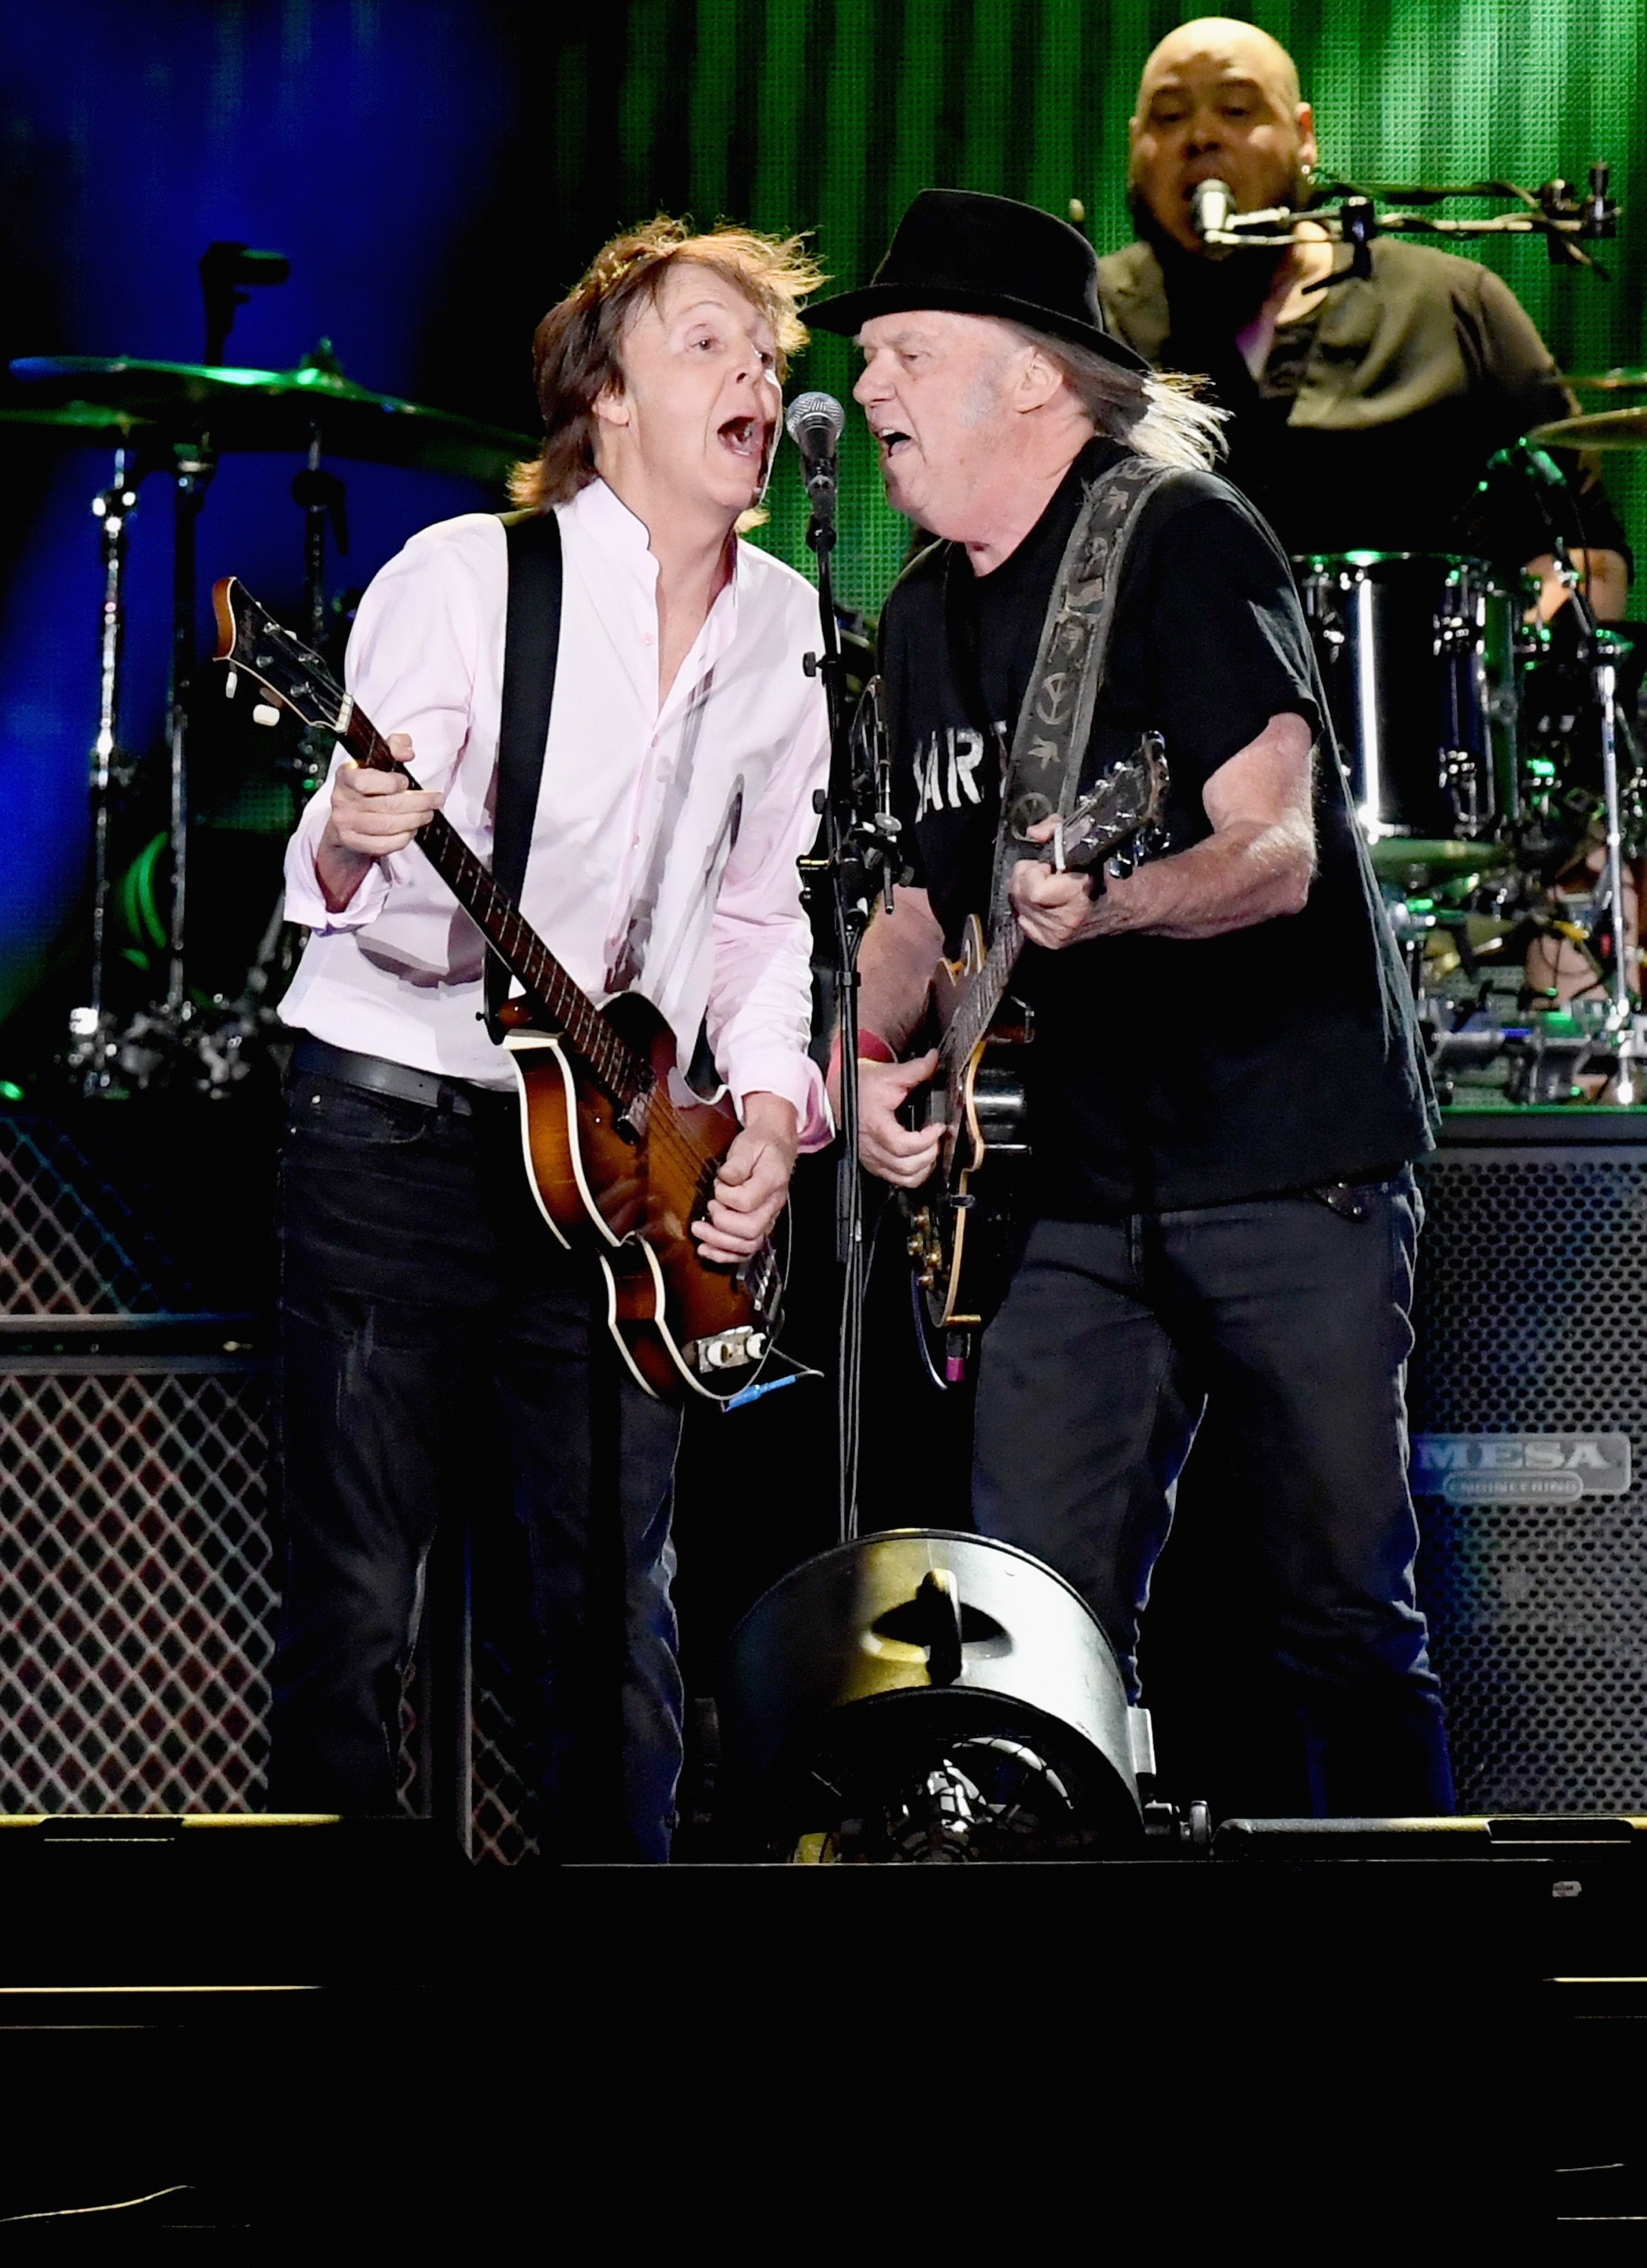 Paul McCartney and Neil Young perform onstage during Desert Trip at the Empire Polo Field on October 8, 2016 in Indio